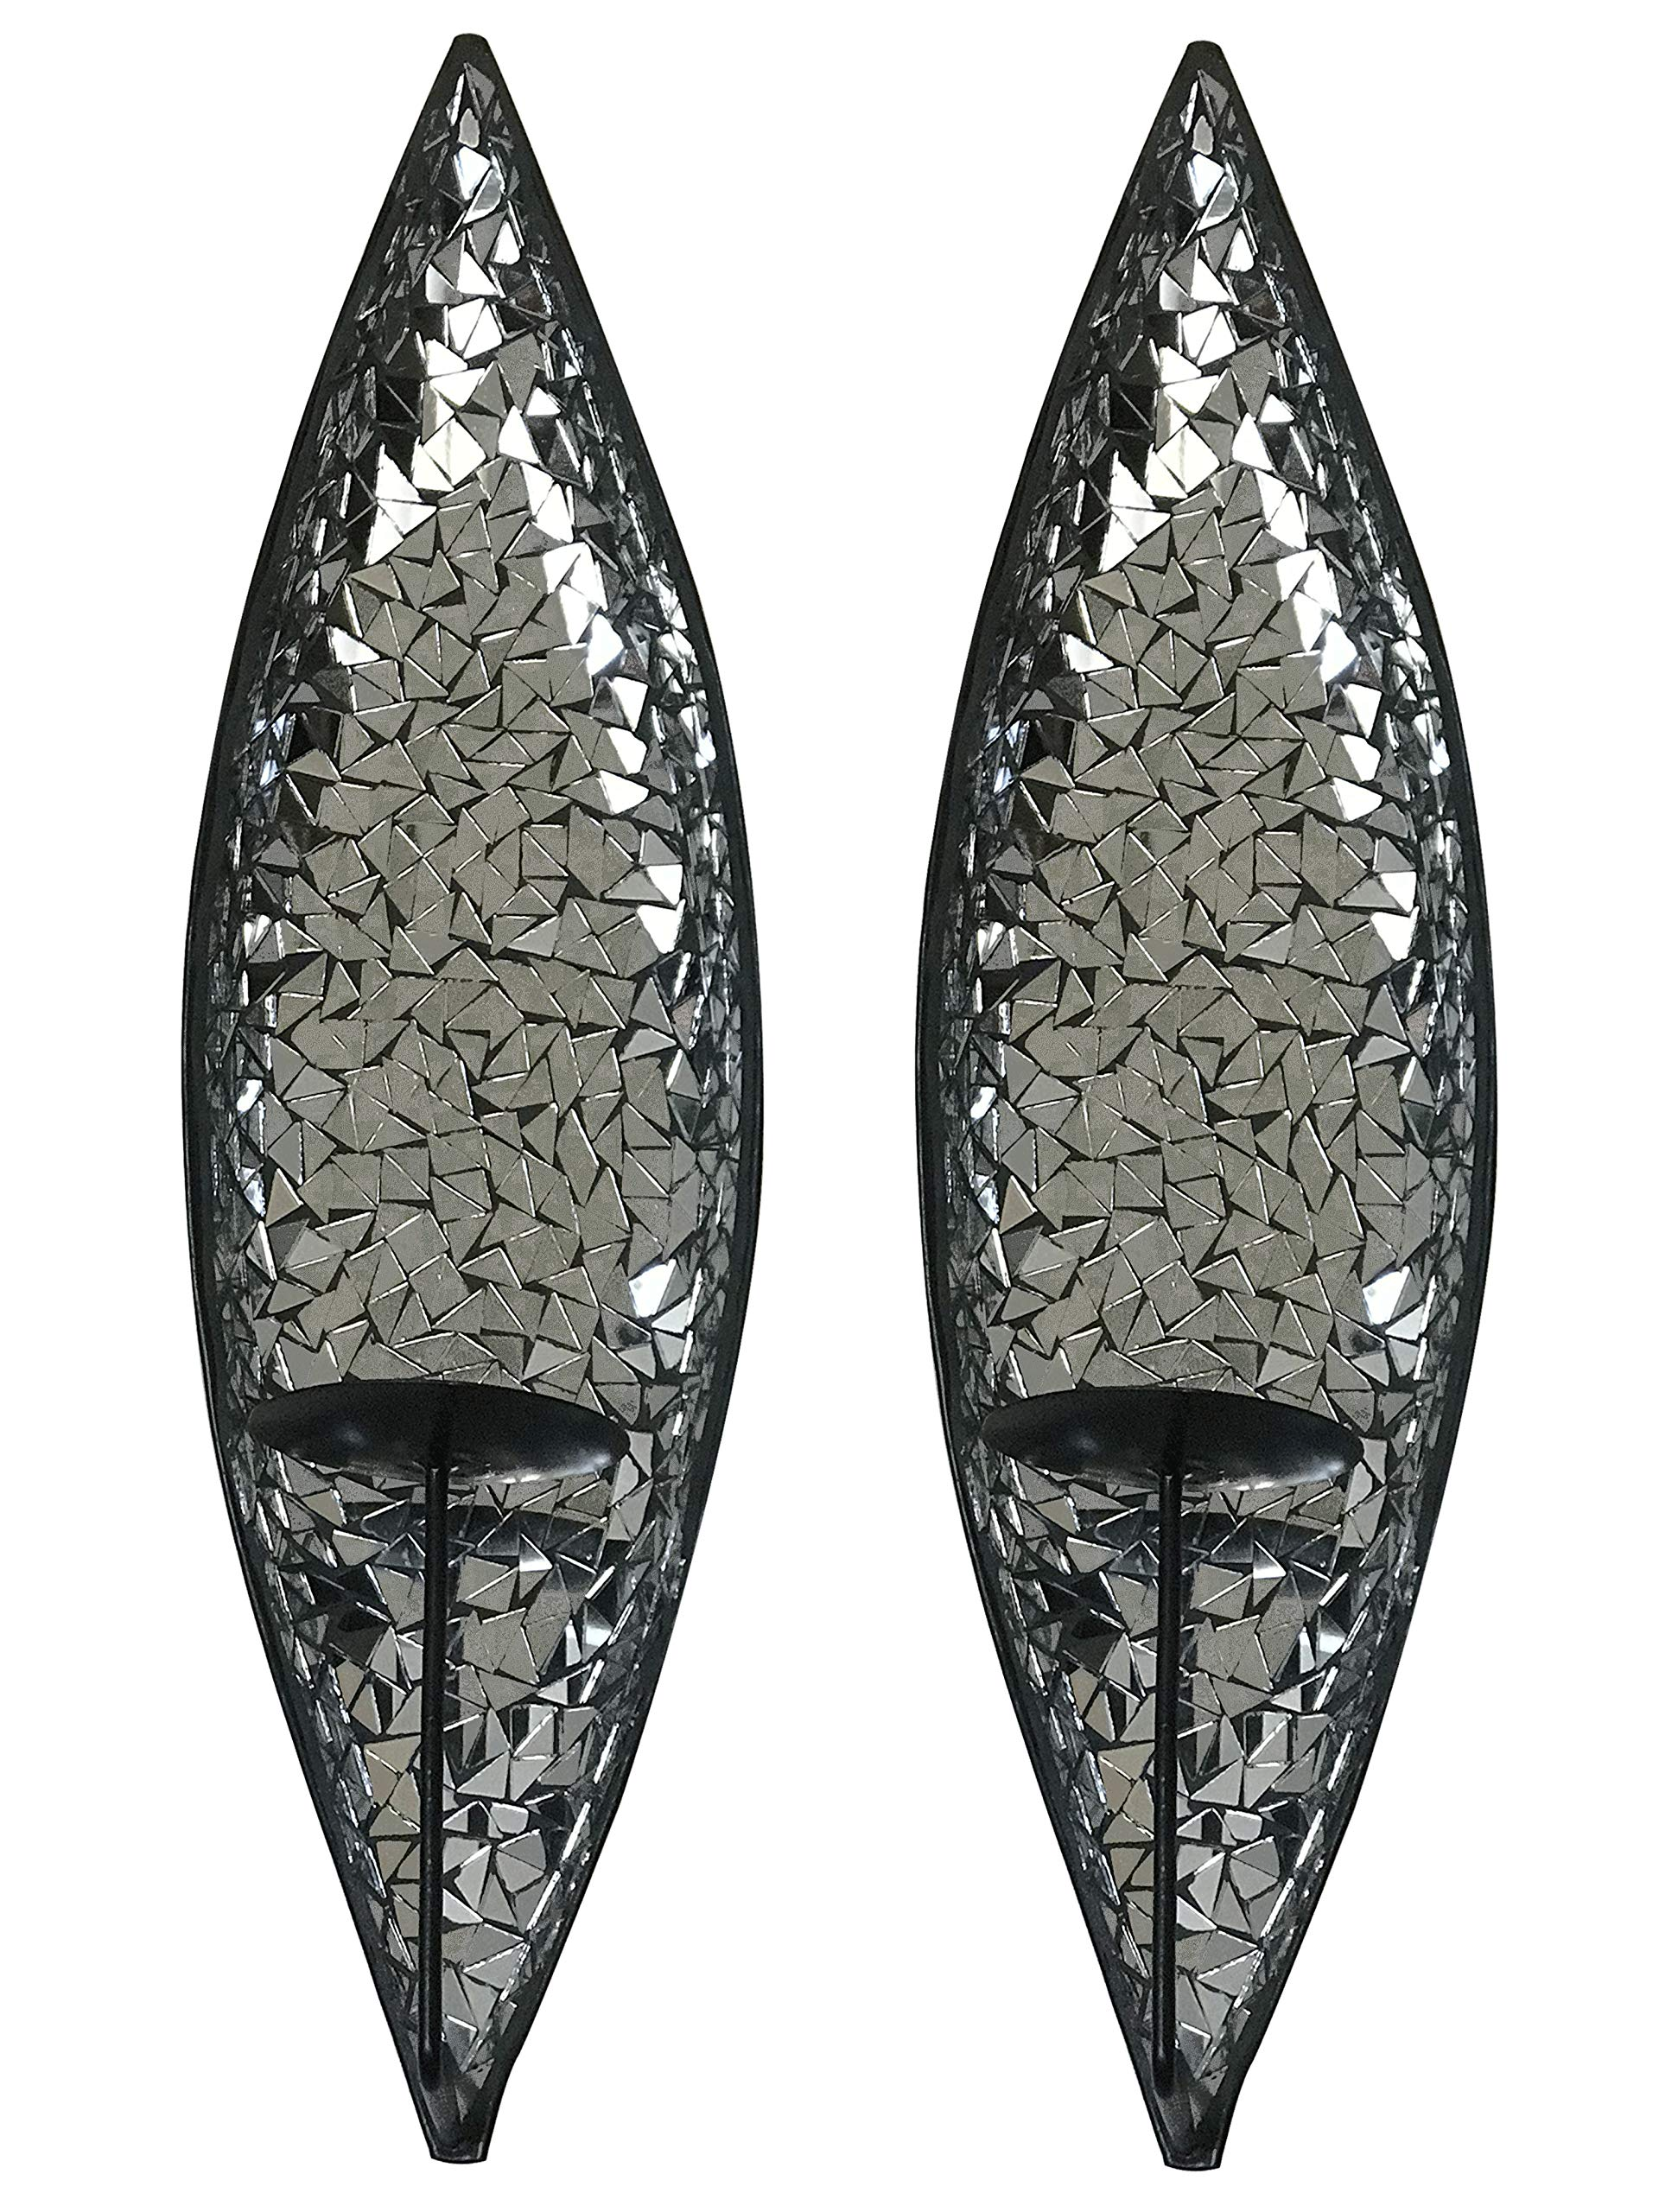 DecorShore ''Bella Palacio'' Mirrored Glass Mosaic & Metal Wall Mounted Decorative Candle Holder Wall Sconce, Set of 2 Large Size 18 in. Light Weight Wall Decor